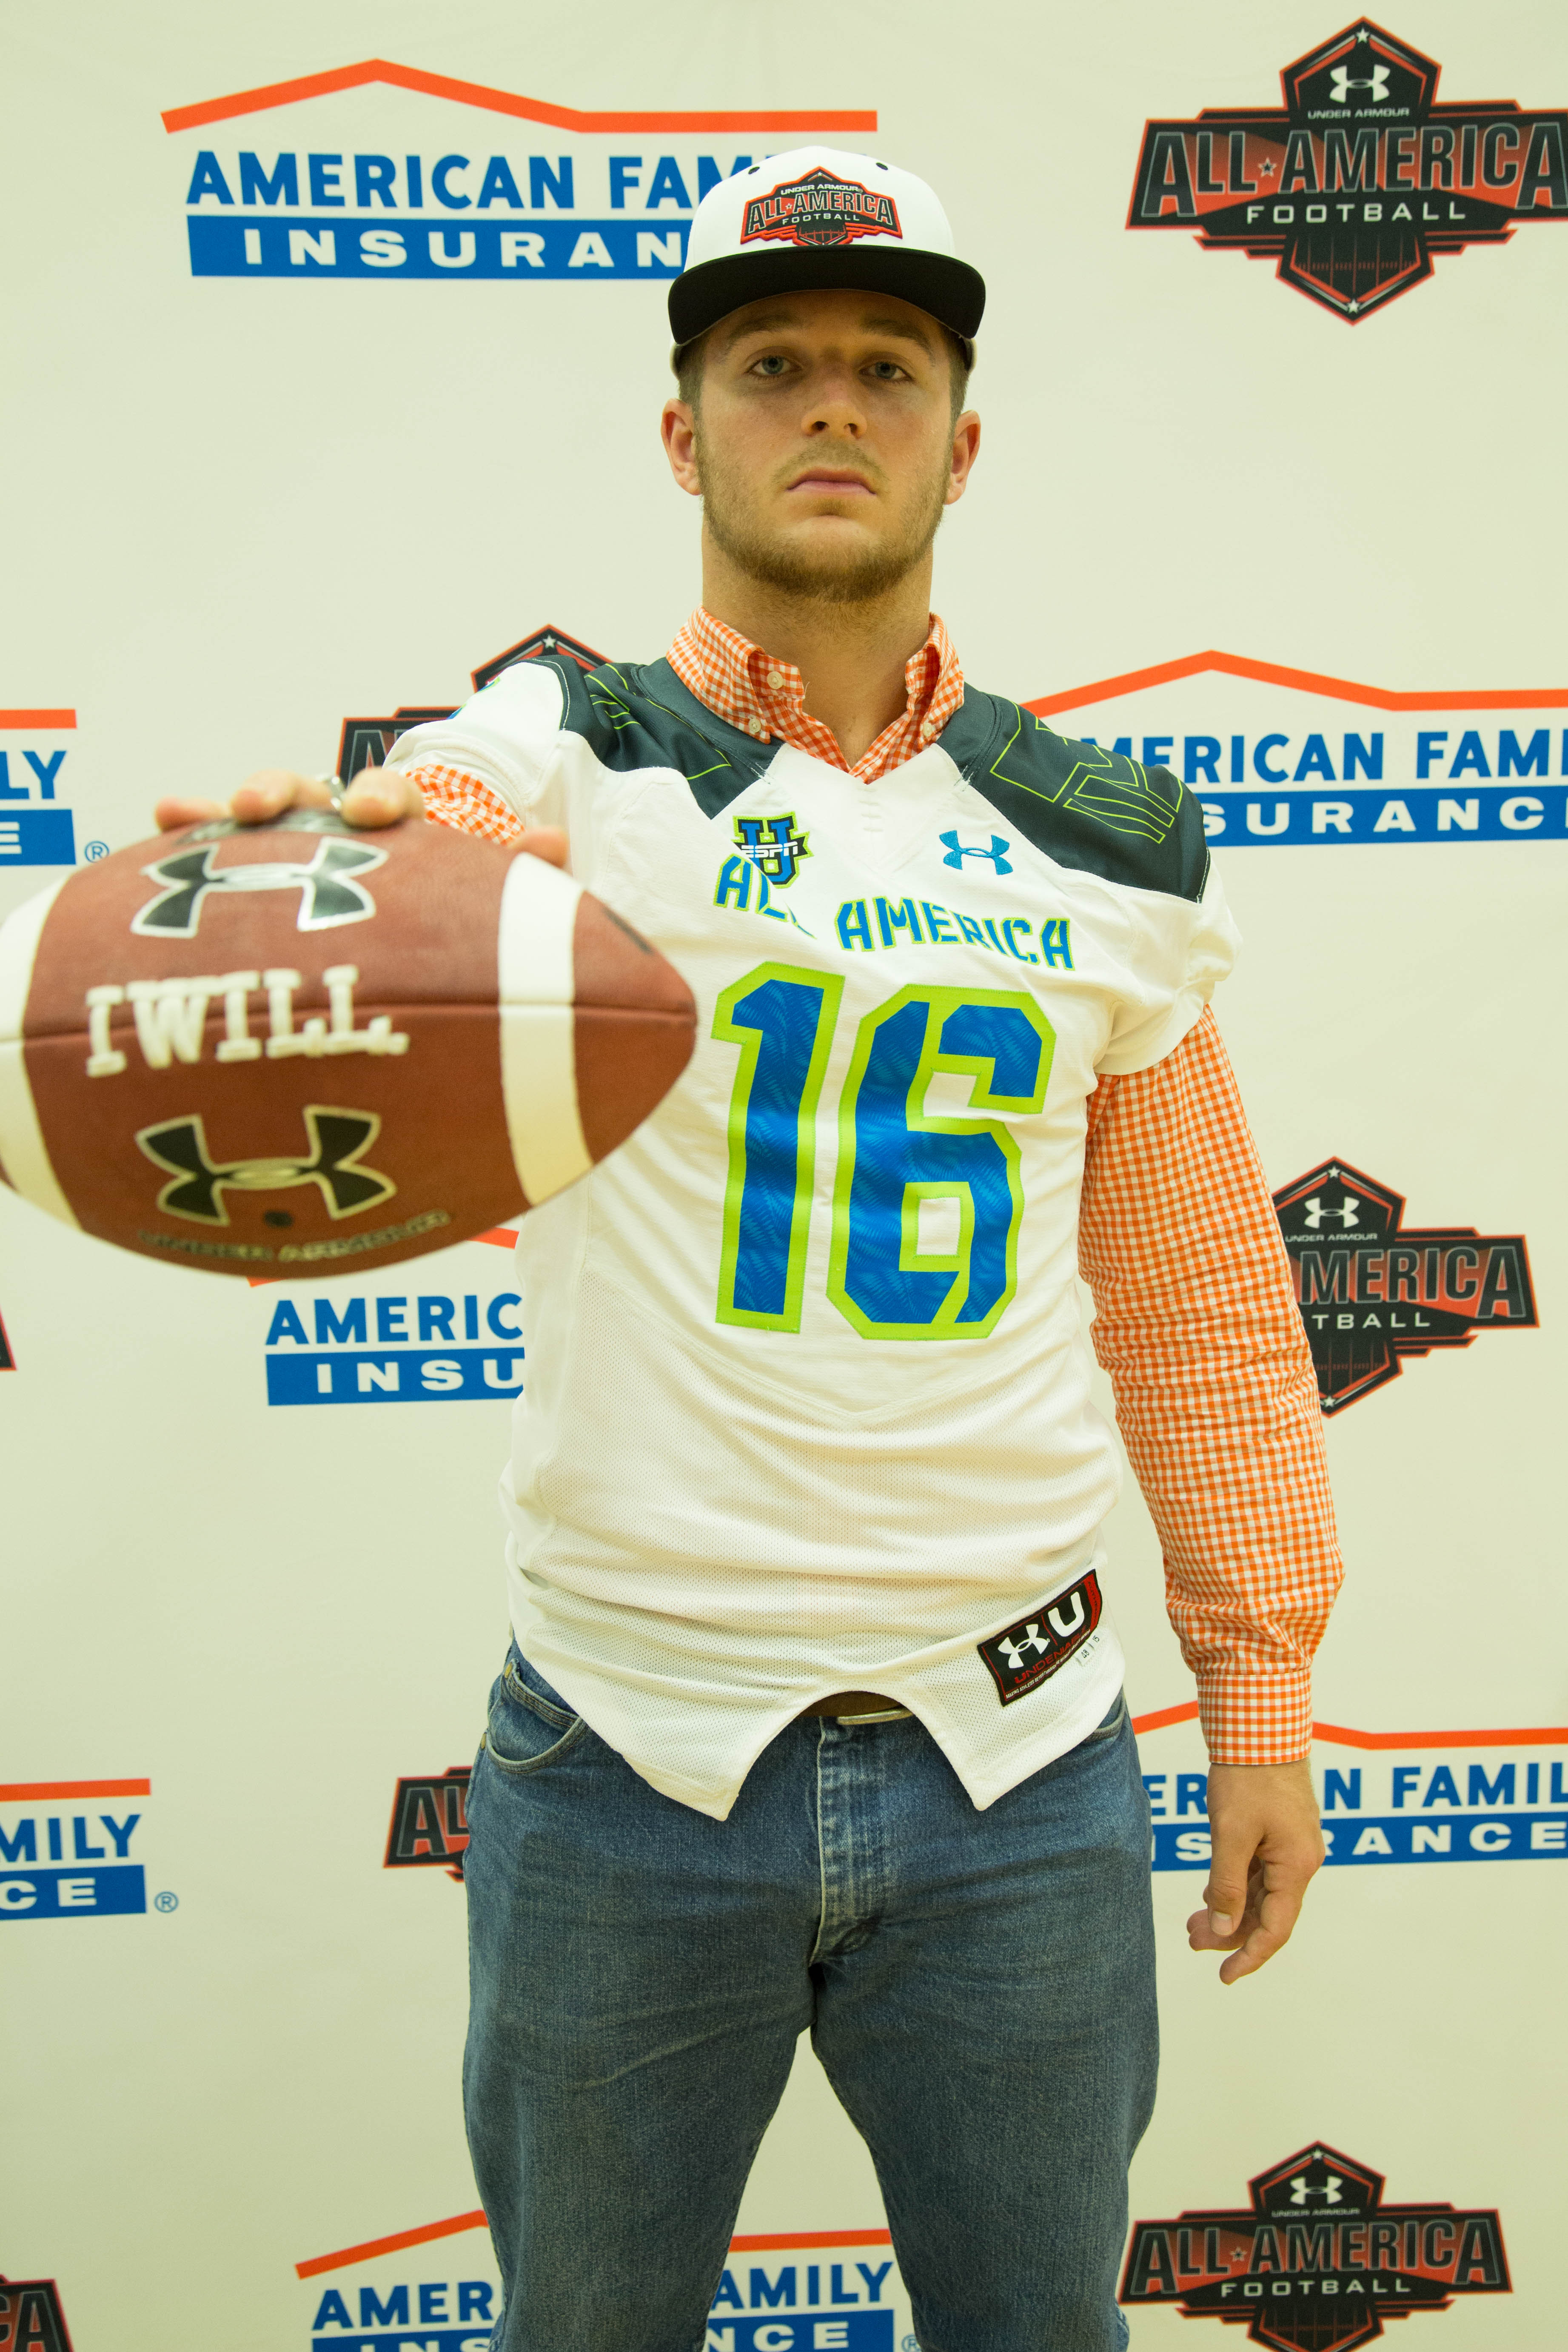 Landon Rice receives his Under Armour All-America jersey (Photo: Intersport)